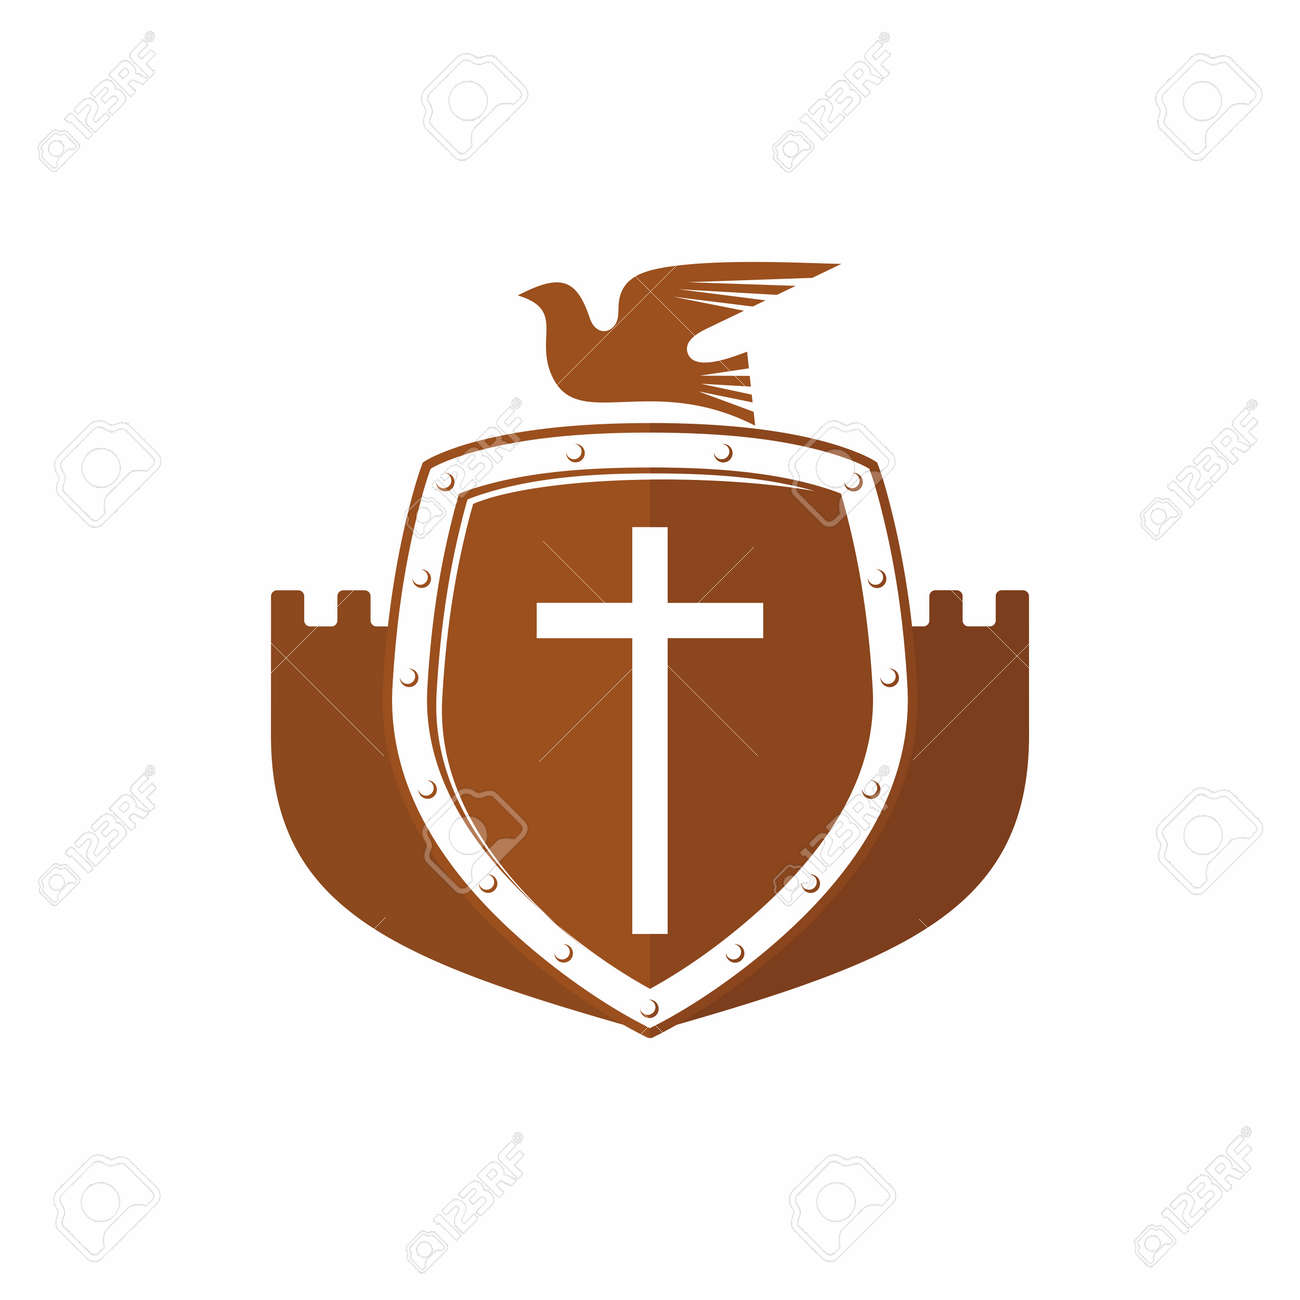 Church Logo Christian Symbols Shield Fortress Jesus Dove